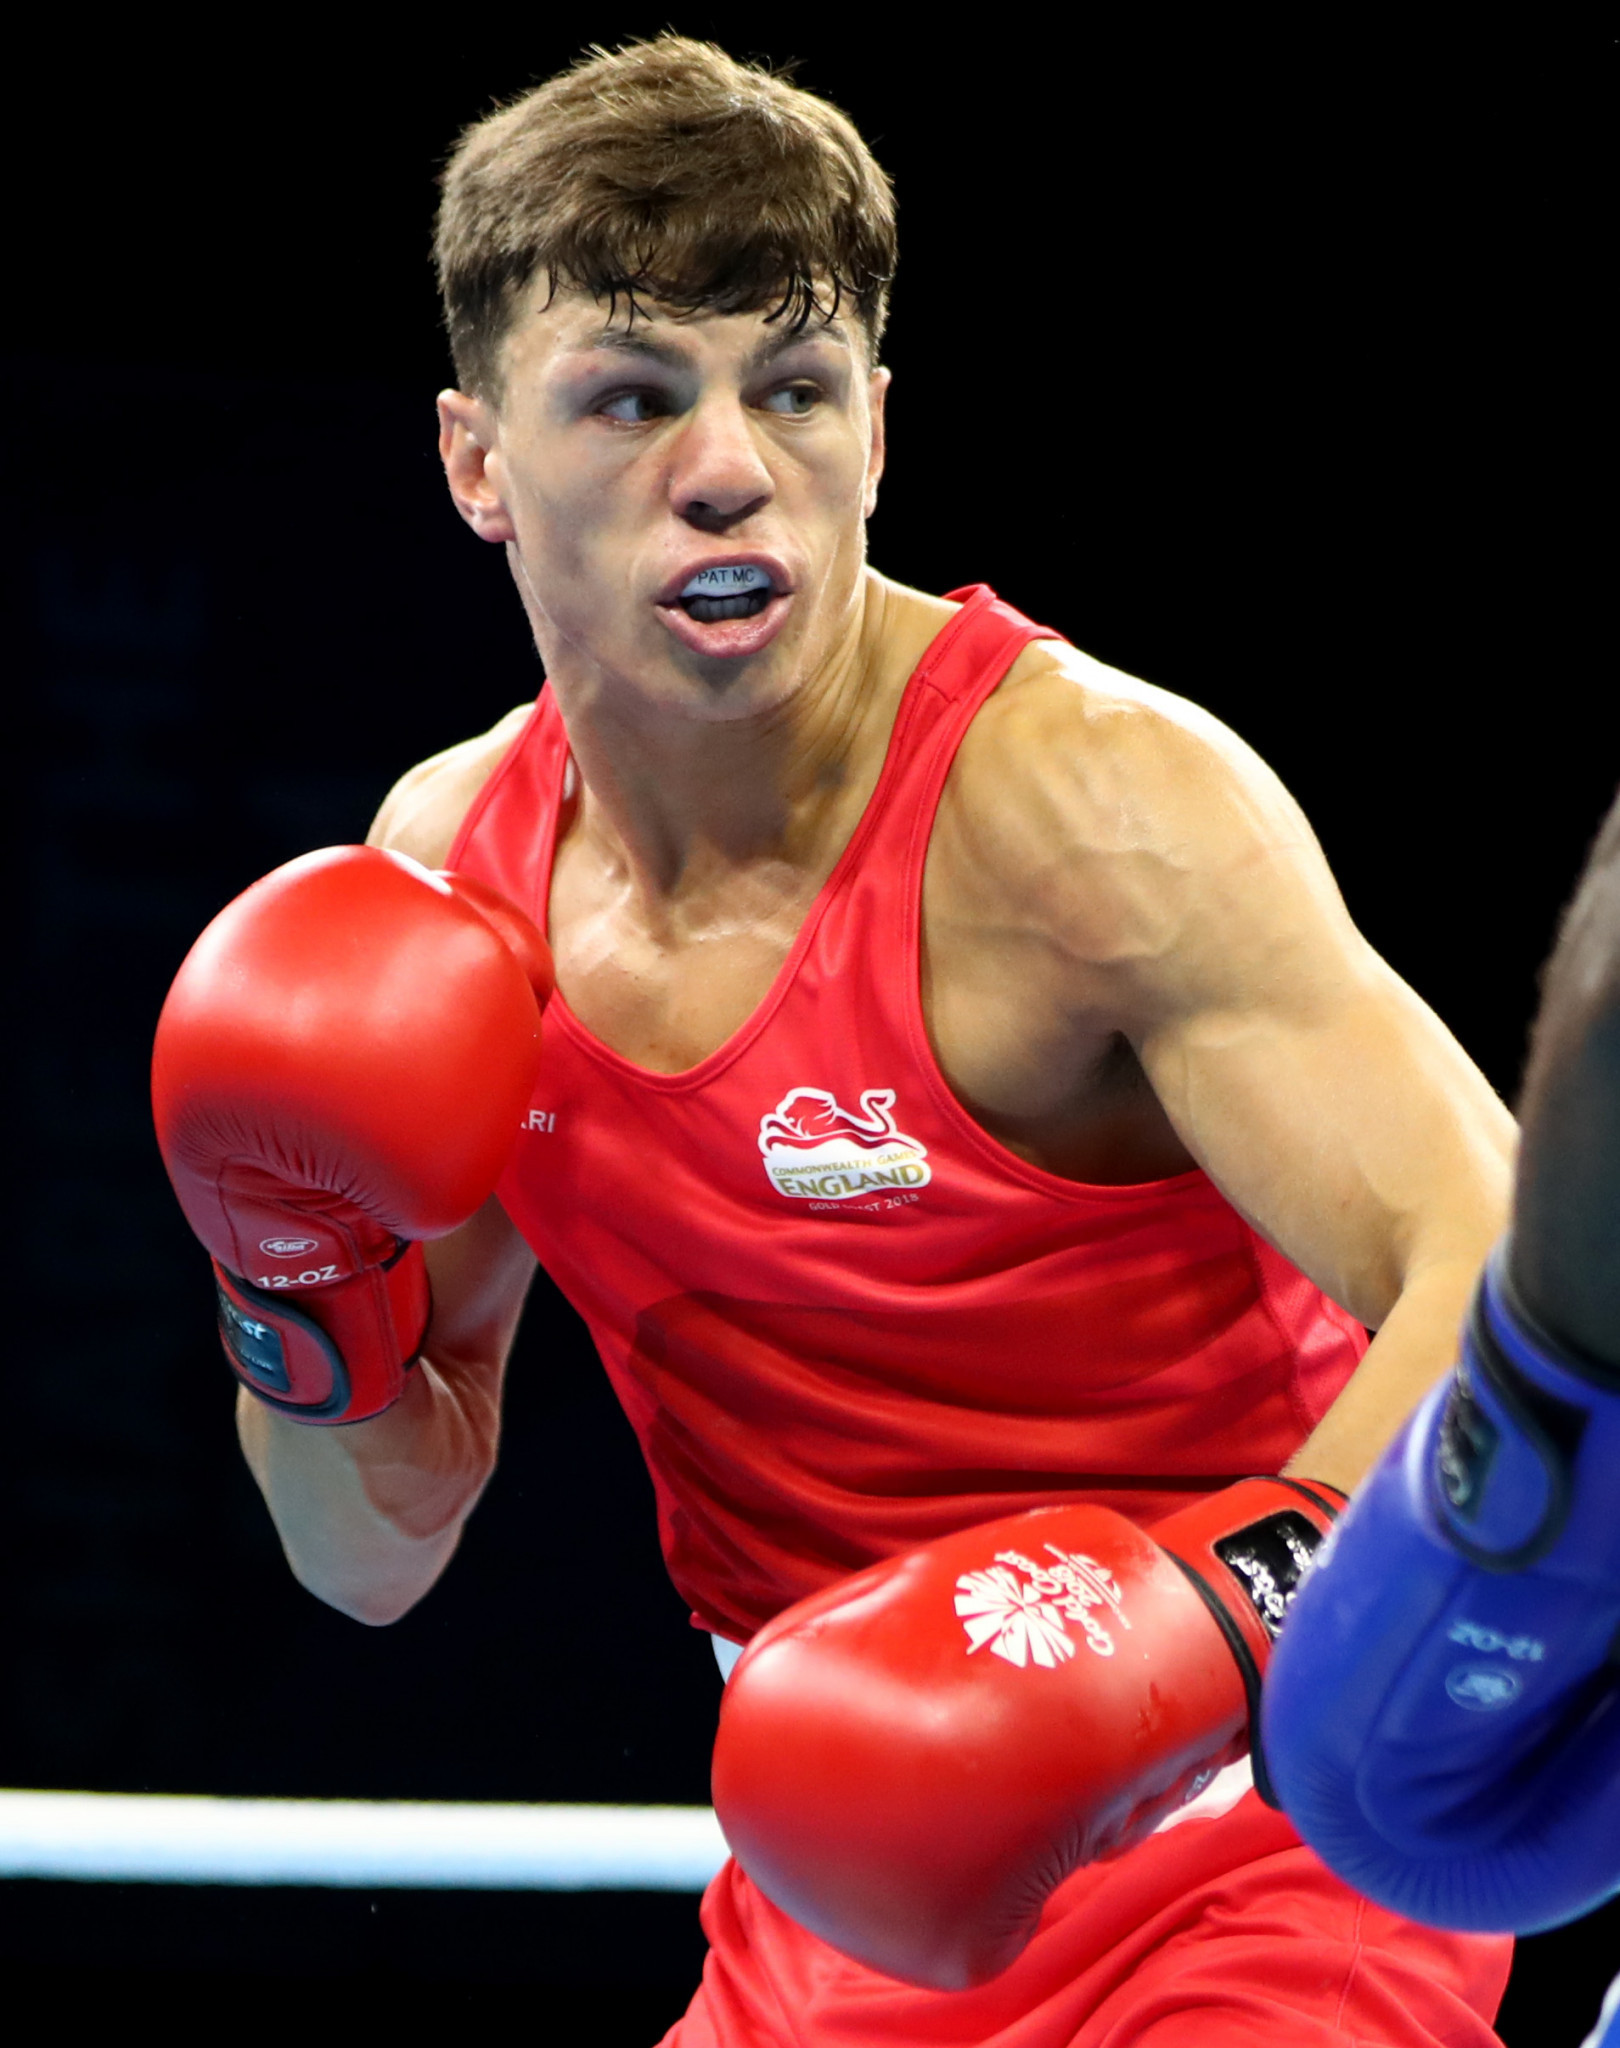 Britain's Pat McCormack was an emphatic quarter-final winner in the Tokyo 2020 European Olympic boxing qualifier ©Getty Images